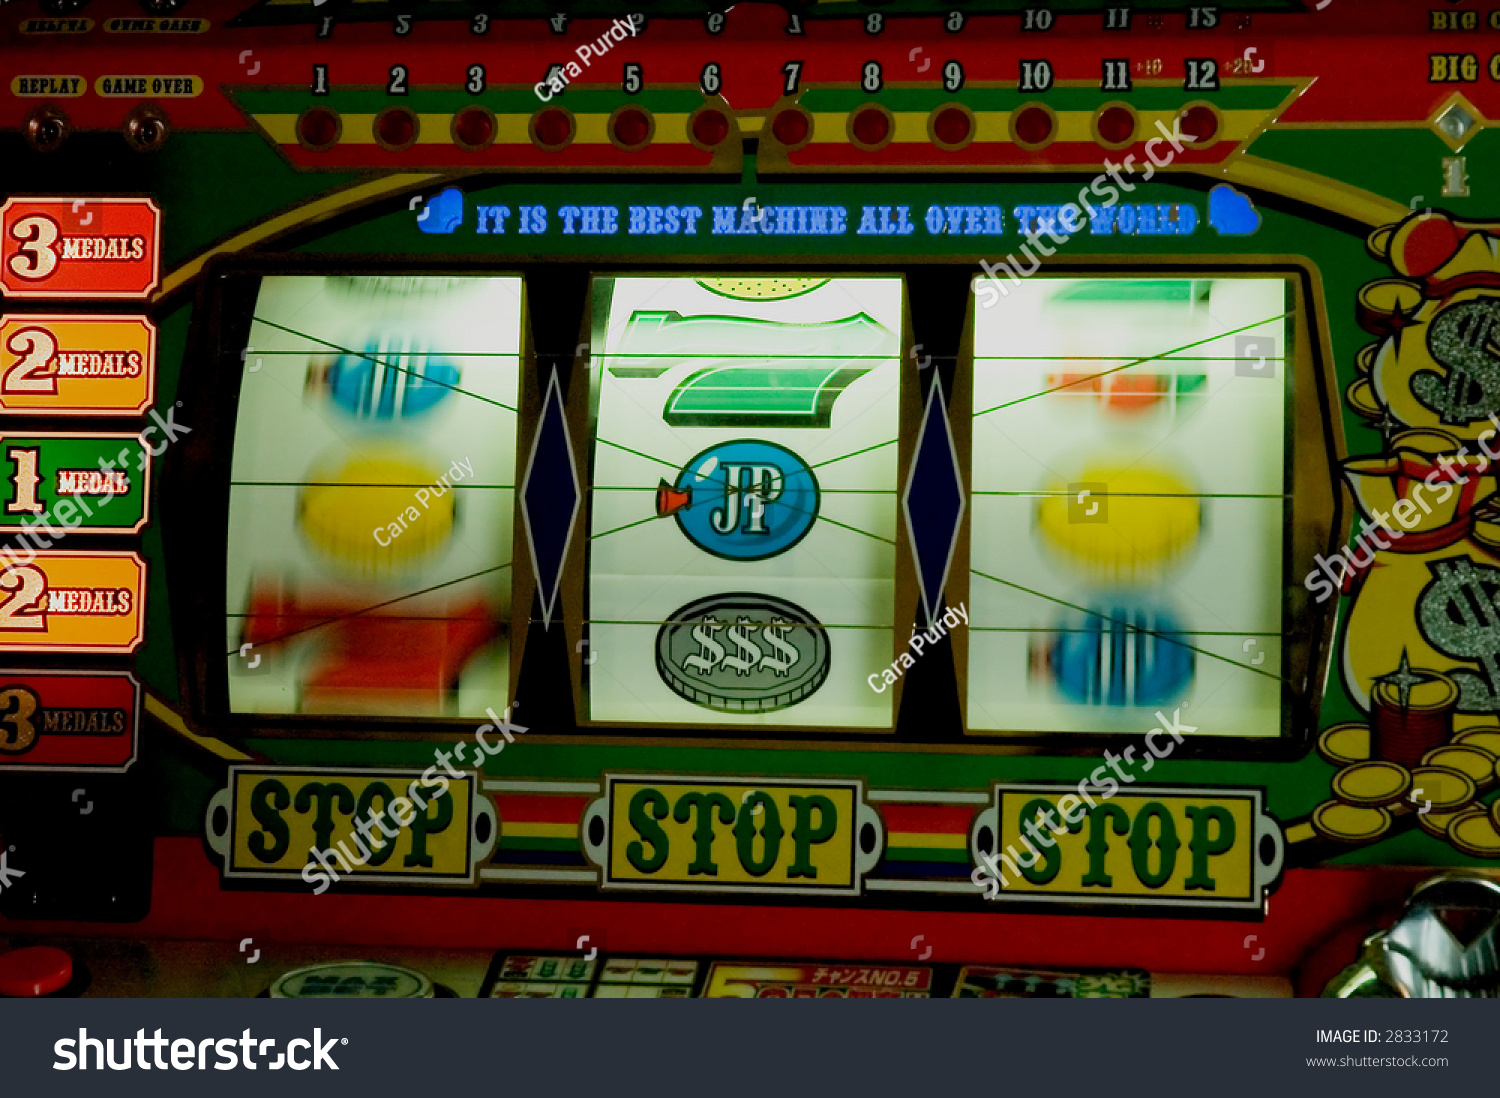 21 dukes casino download